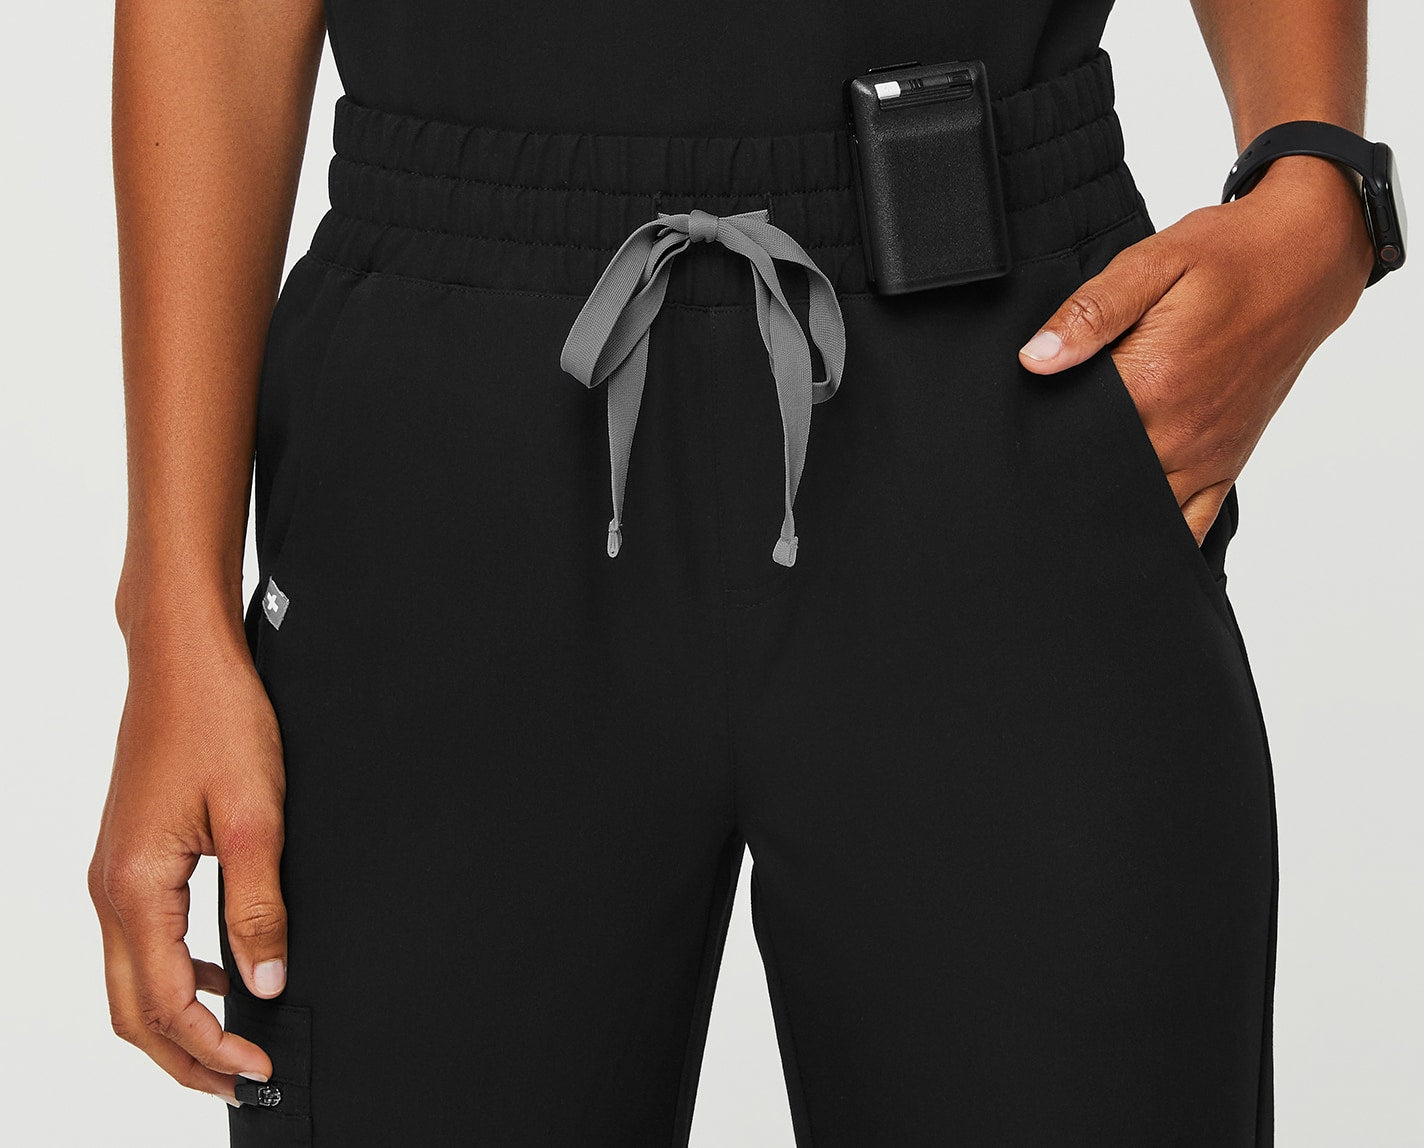 All business meets extreme comfort. Athletically inspired and slightly updated with a high waisted cut, the High Waisted Zamora Jogger is designed with six pockets, a slim fit and our proprietary FIONX fabric.